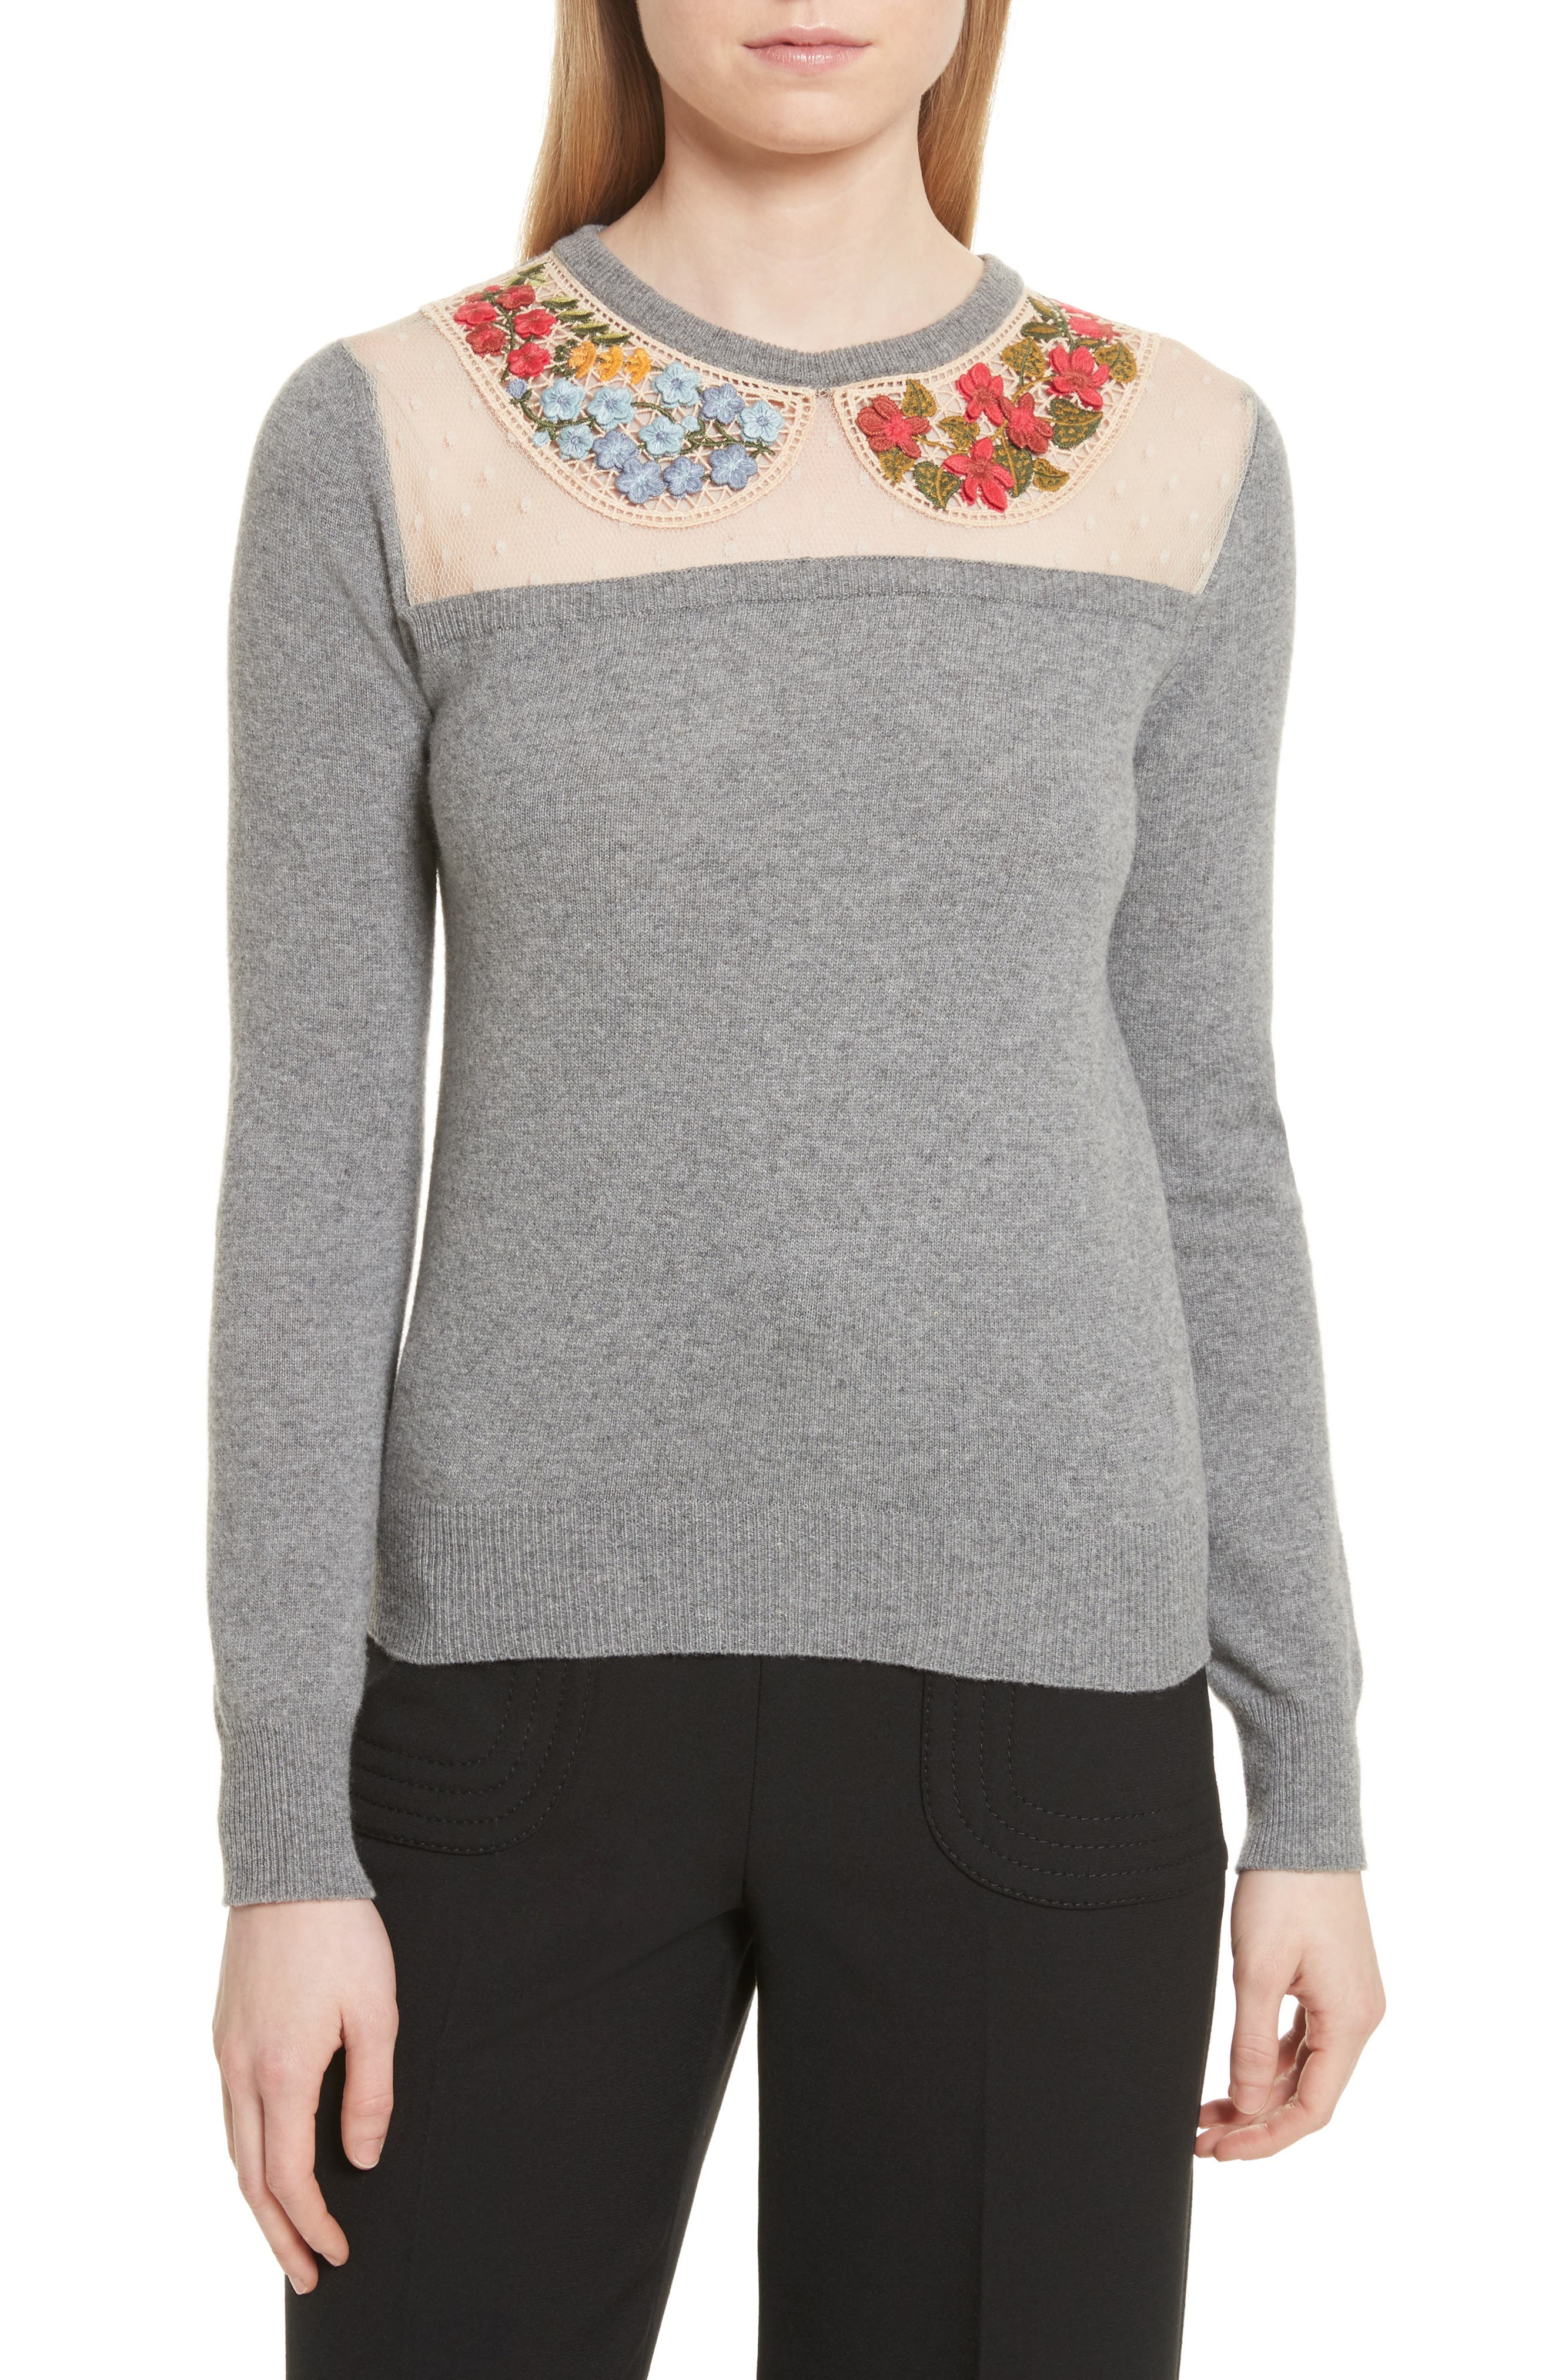 RED Valentino Macramé & Floral Embellished Wool Sweater